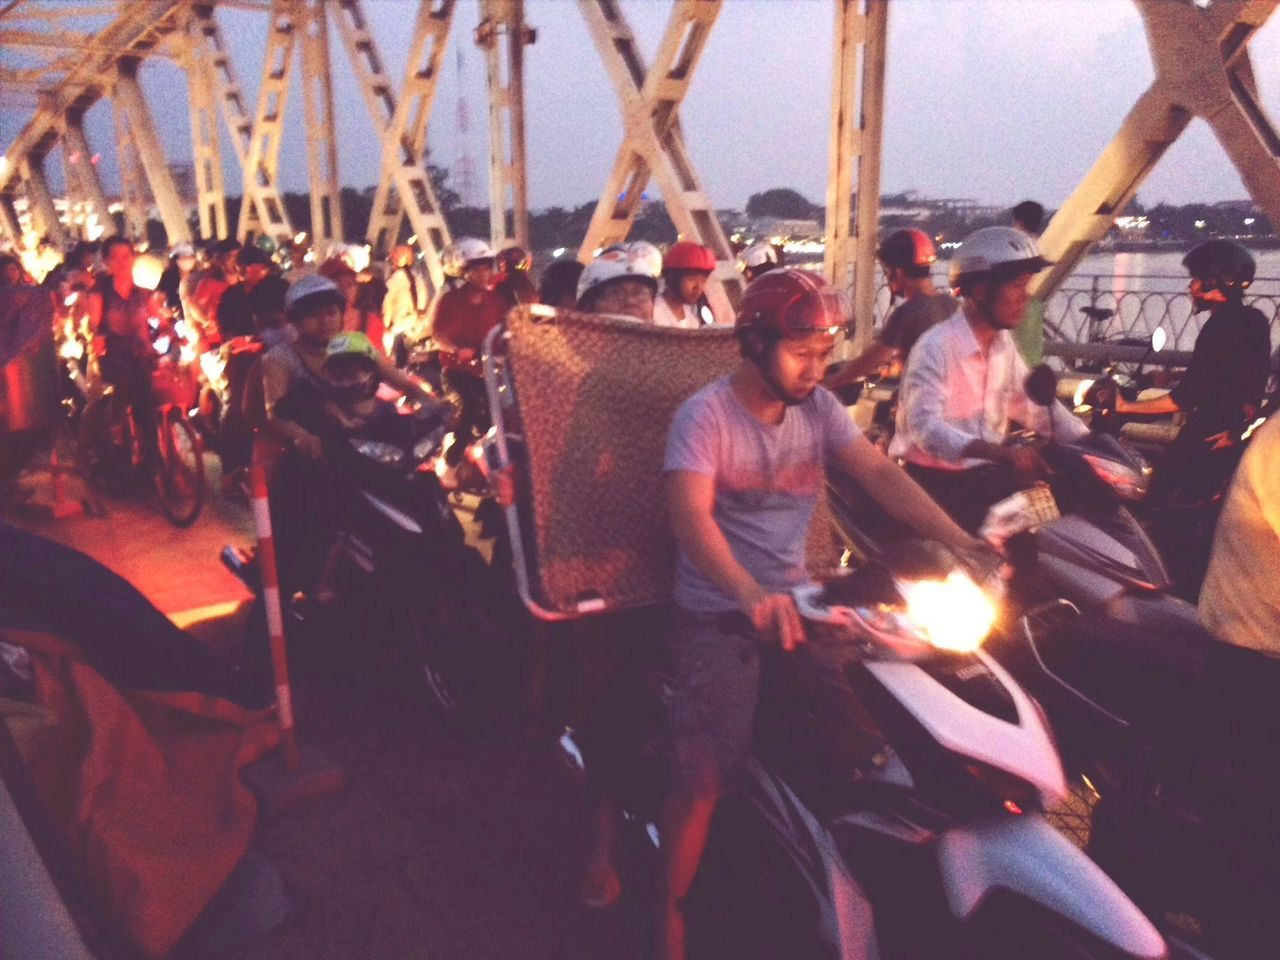 Heavy traffic across the Trường Tiền bridge in Huế Sunset Motorcycles Rush Hour Streetphotography